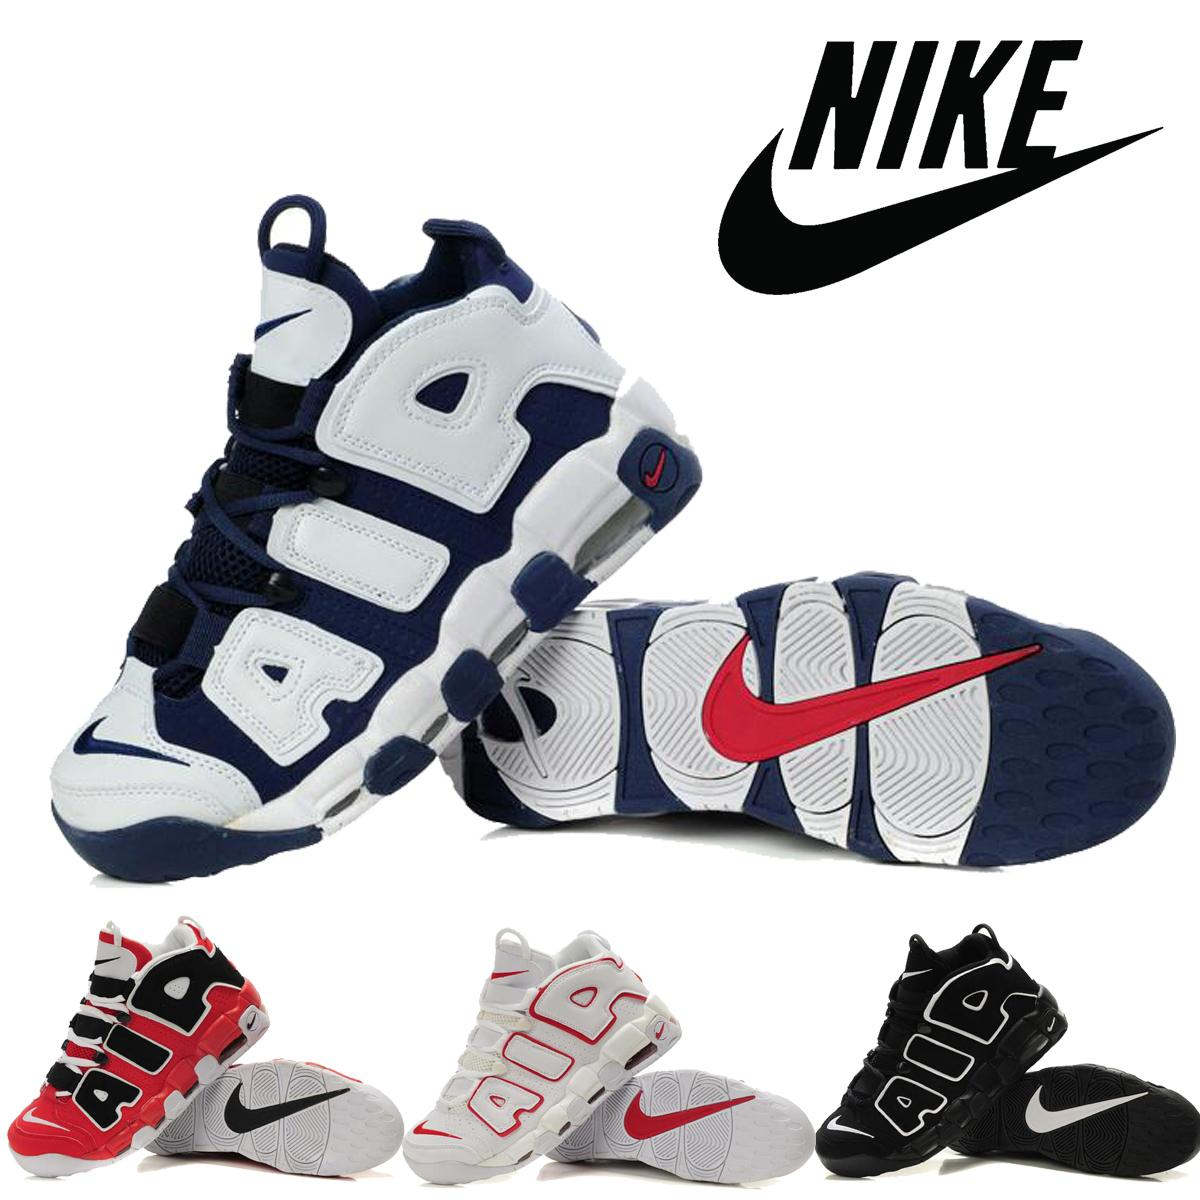 Nike Air More Uptempo Men Basketball Shoes Pippen Retro Men Basketball Shoes  Cheap Air Max Olympic Usa Mens Outdoor Athletic Sneakers Men Basketball  Shoes ...